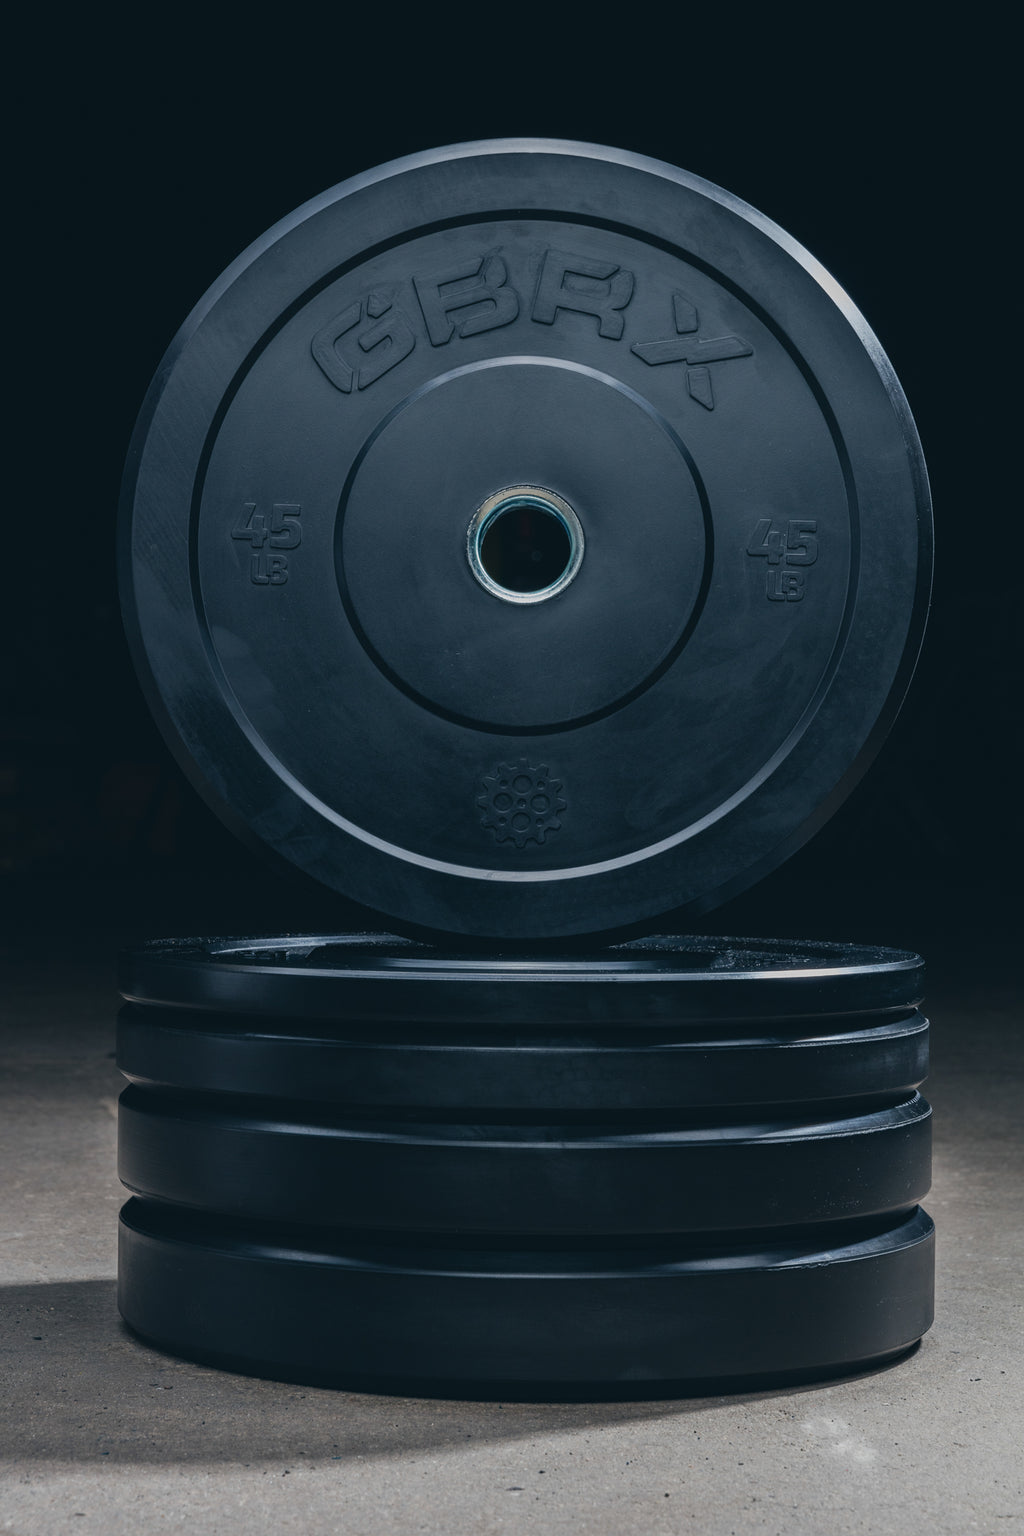 GBRX Black Bumper Plates 230lbs Set